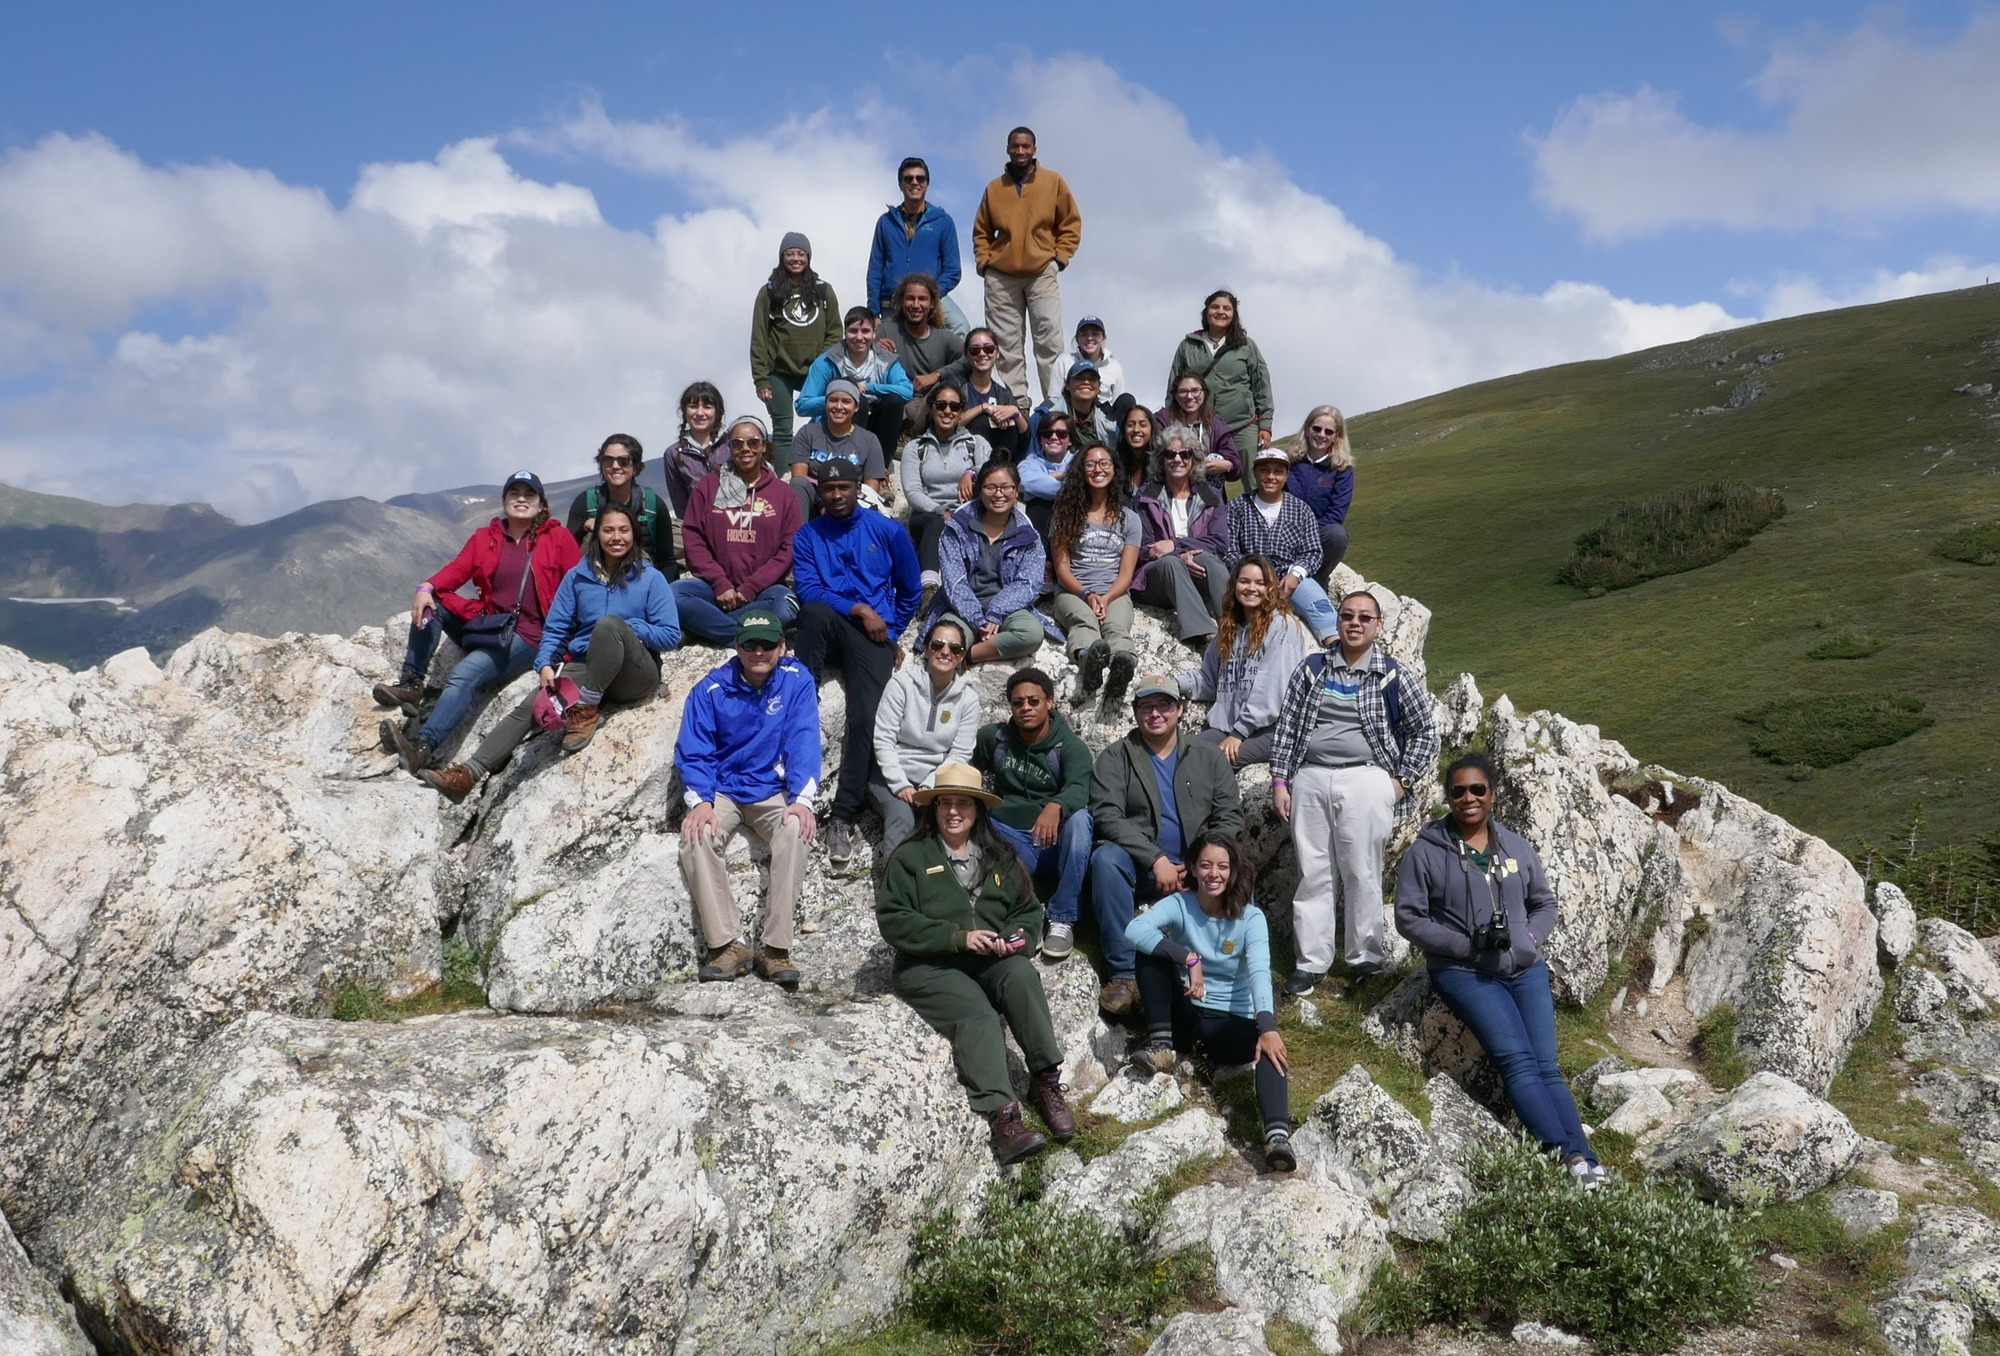 Group picture atop a large rock in a National Park with a ranger in the foreground.